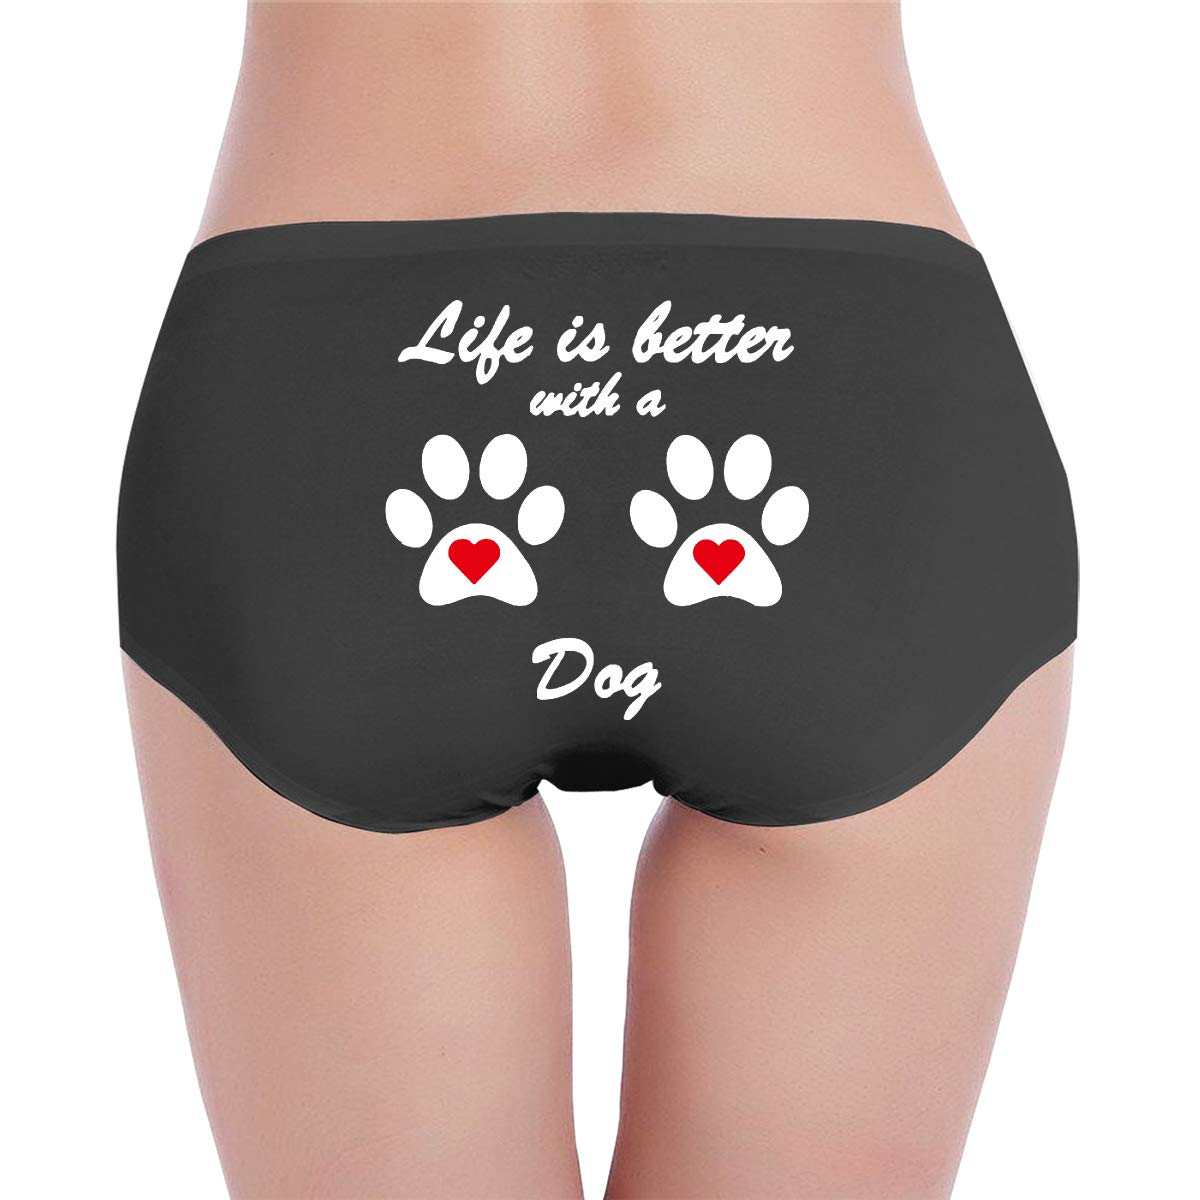 Life is Better with A Dog Womens Soft Stretch Briefs Panties